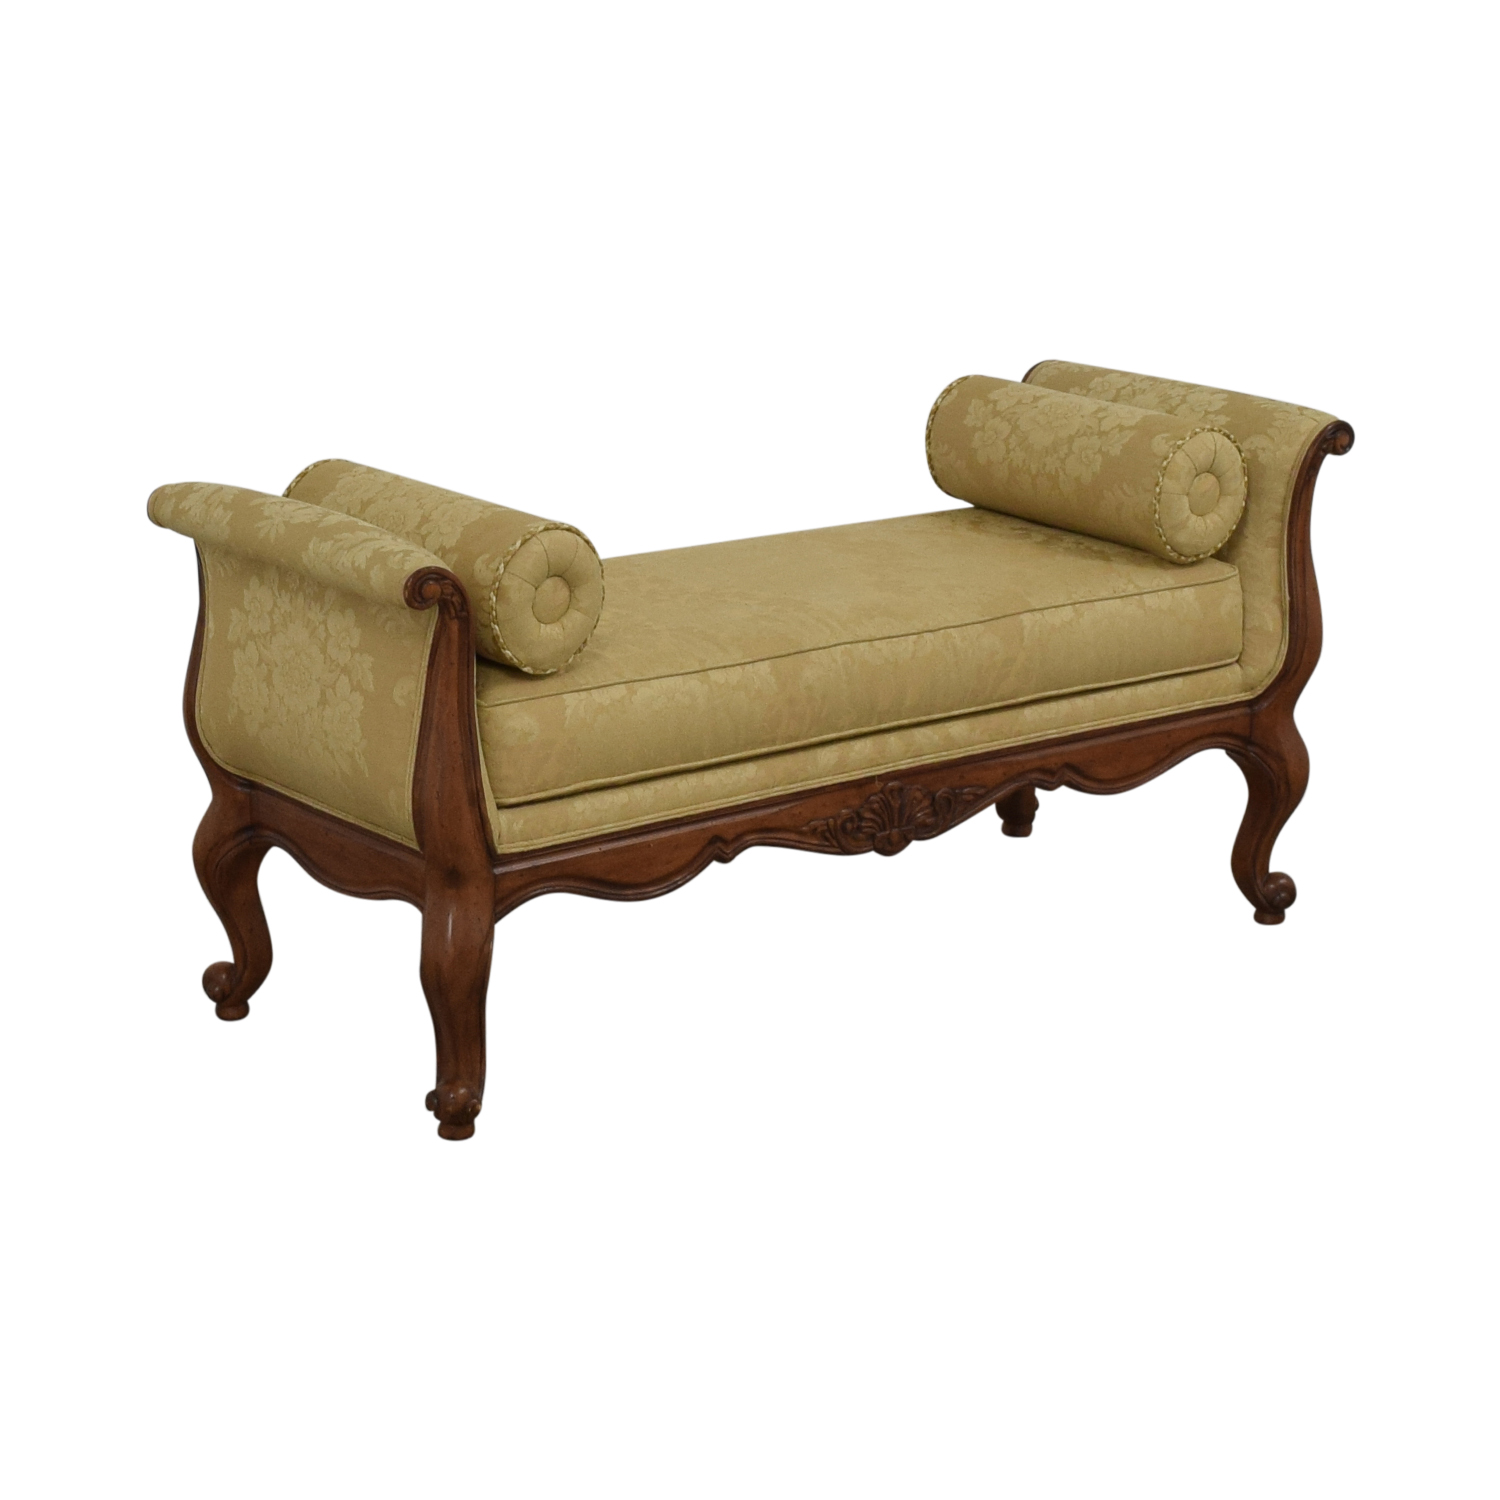 Ethan Allen Ethan Allen Tuscan Bench nyc